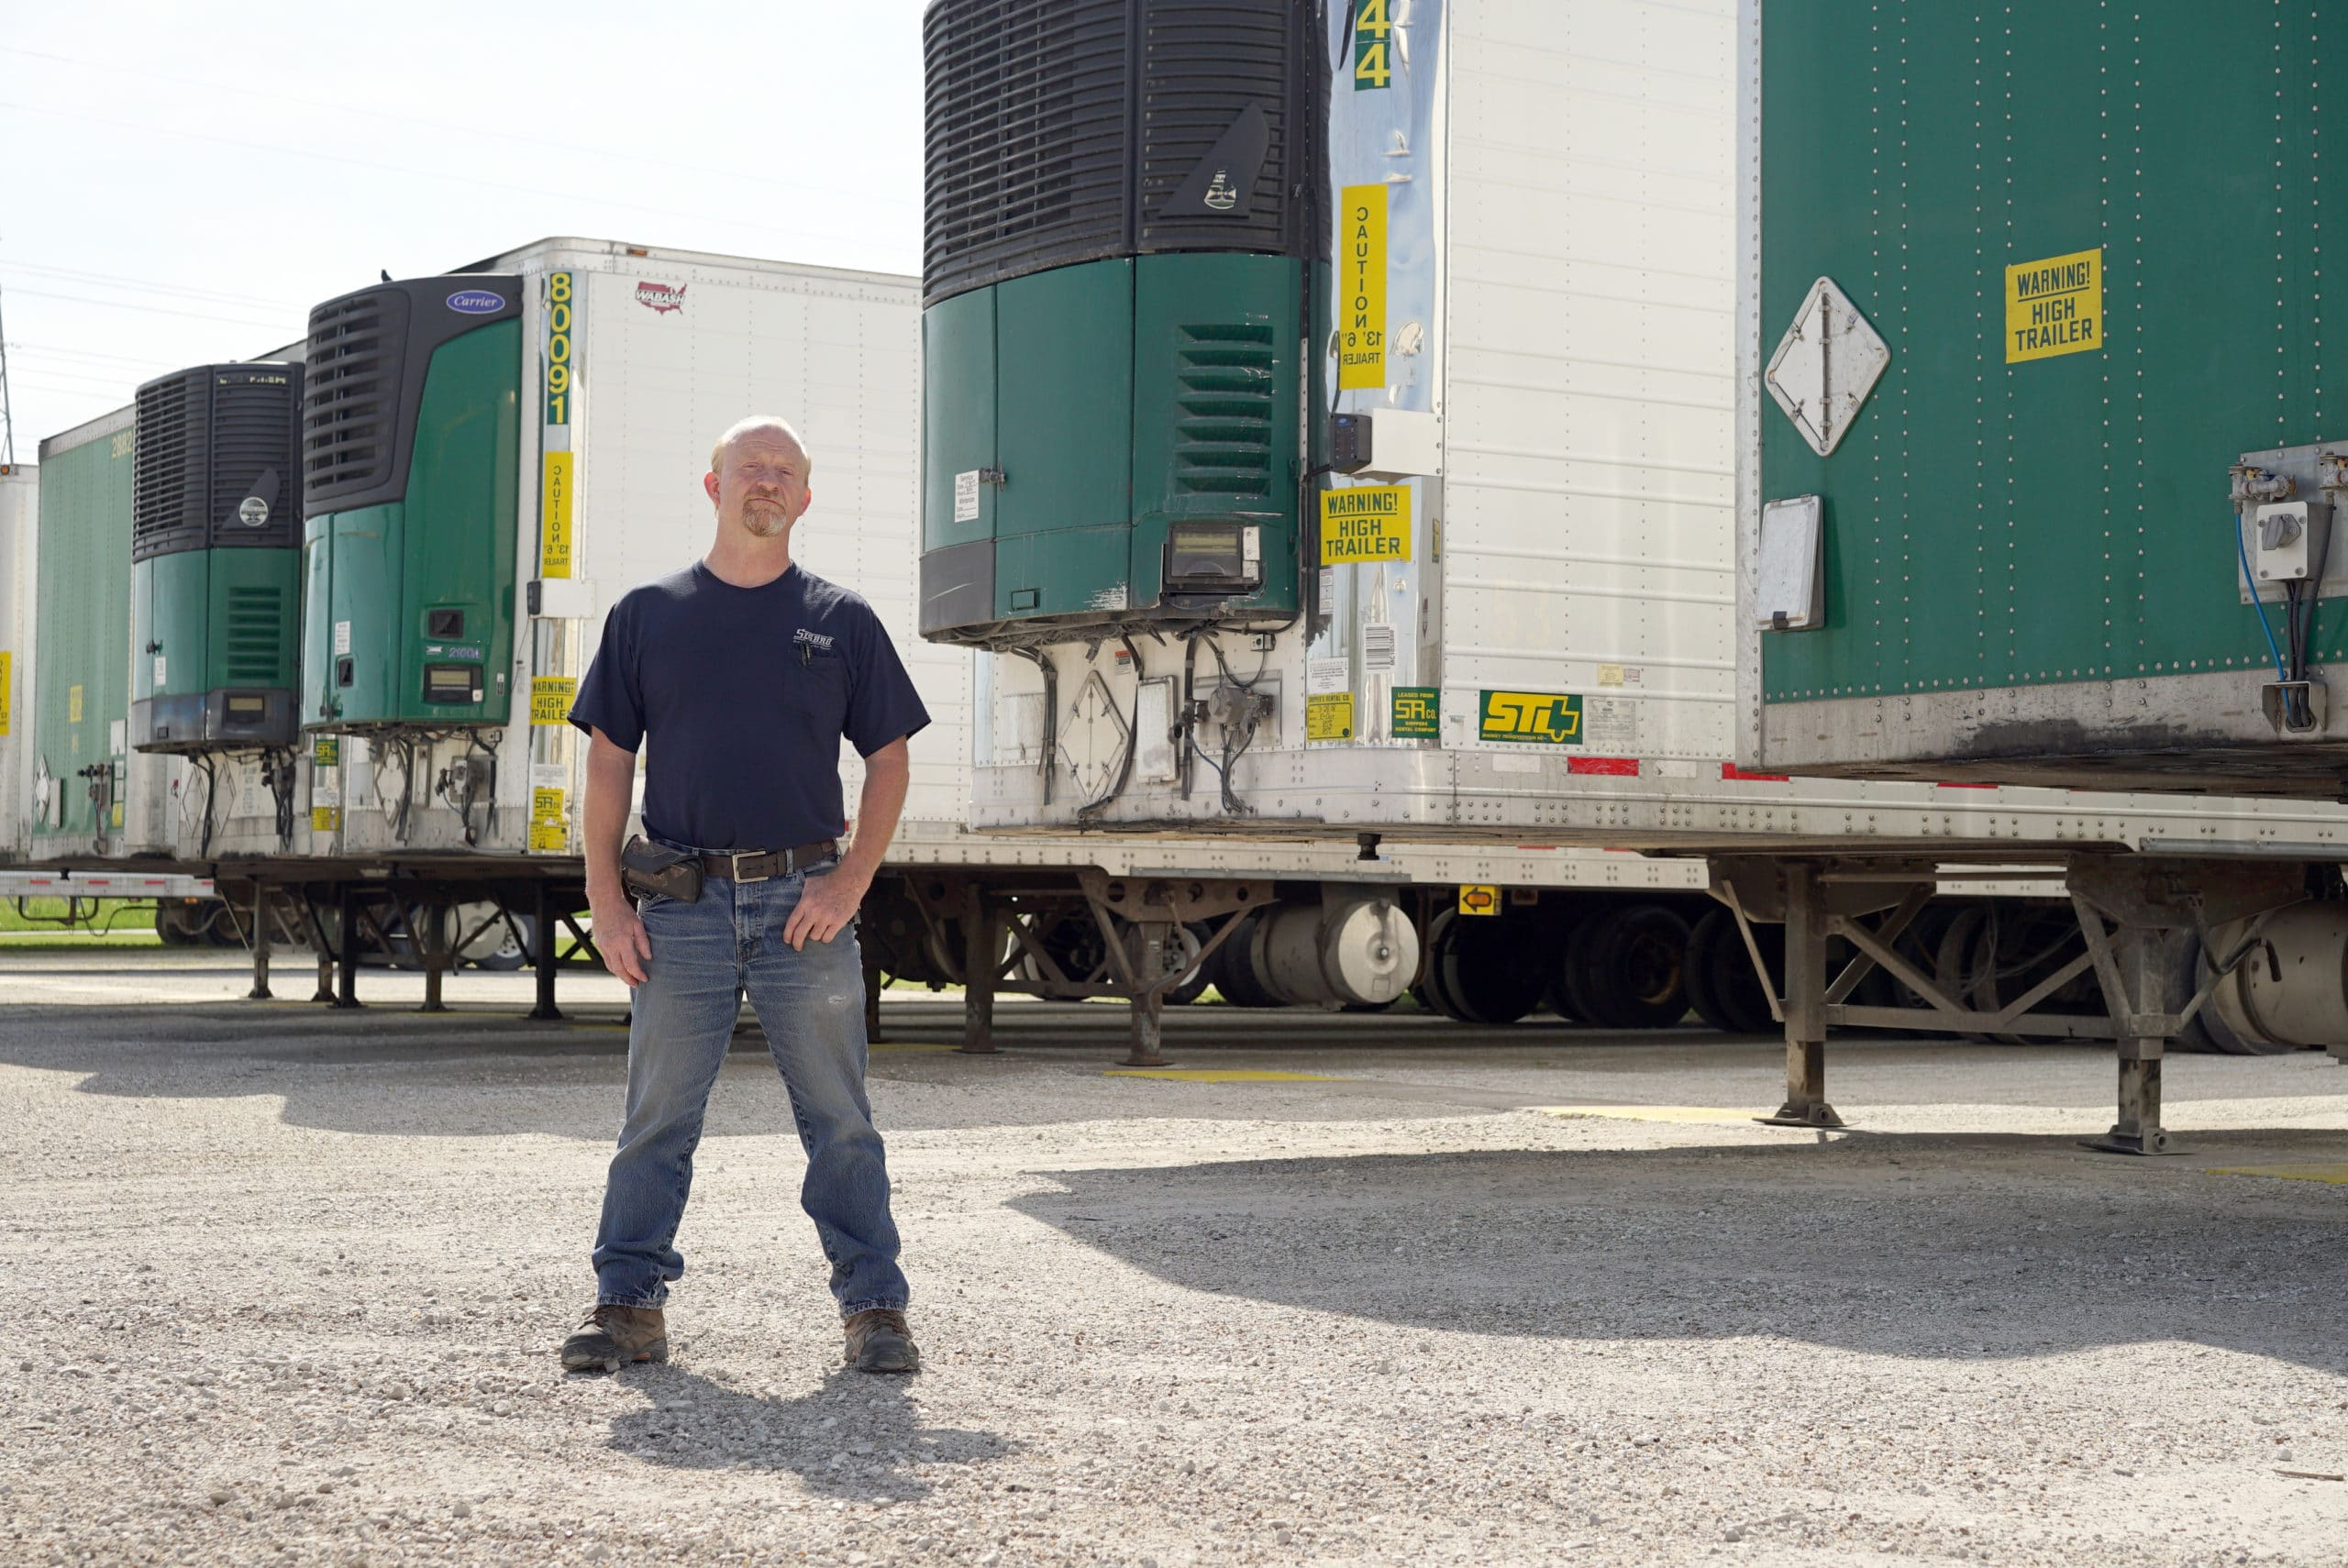 Sisbro truck driver with the trailers